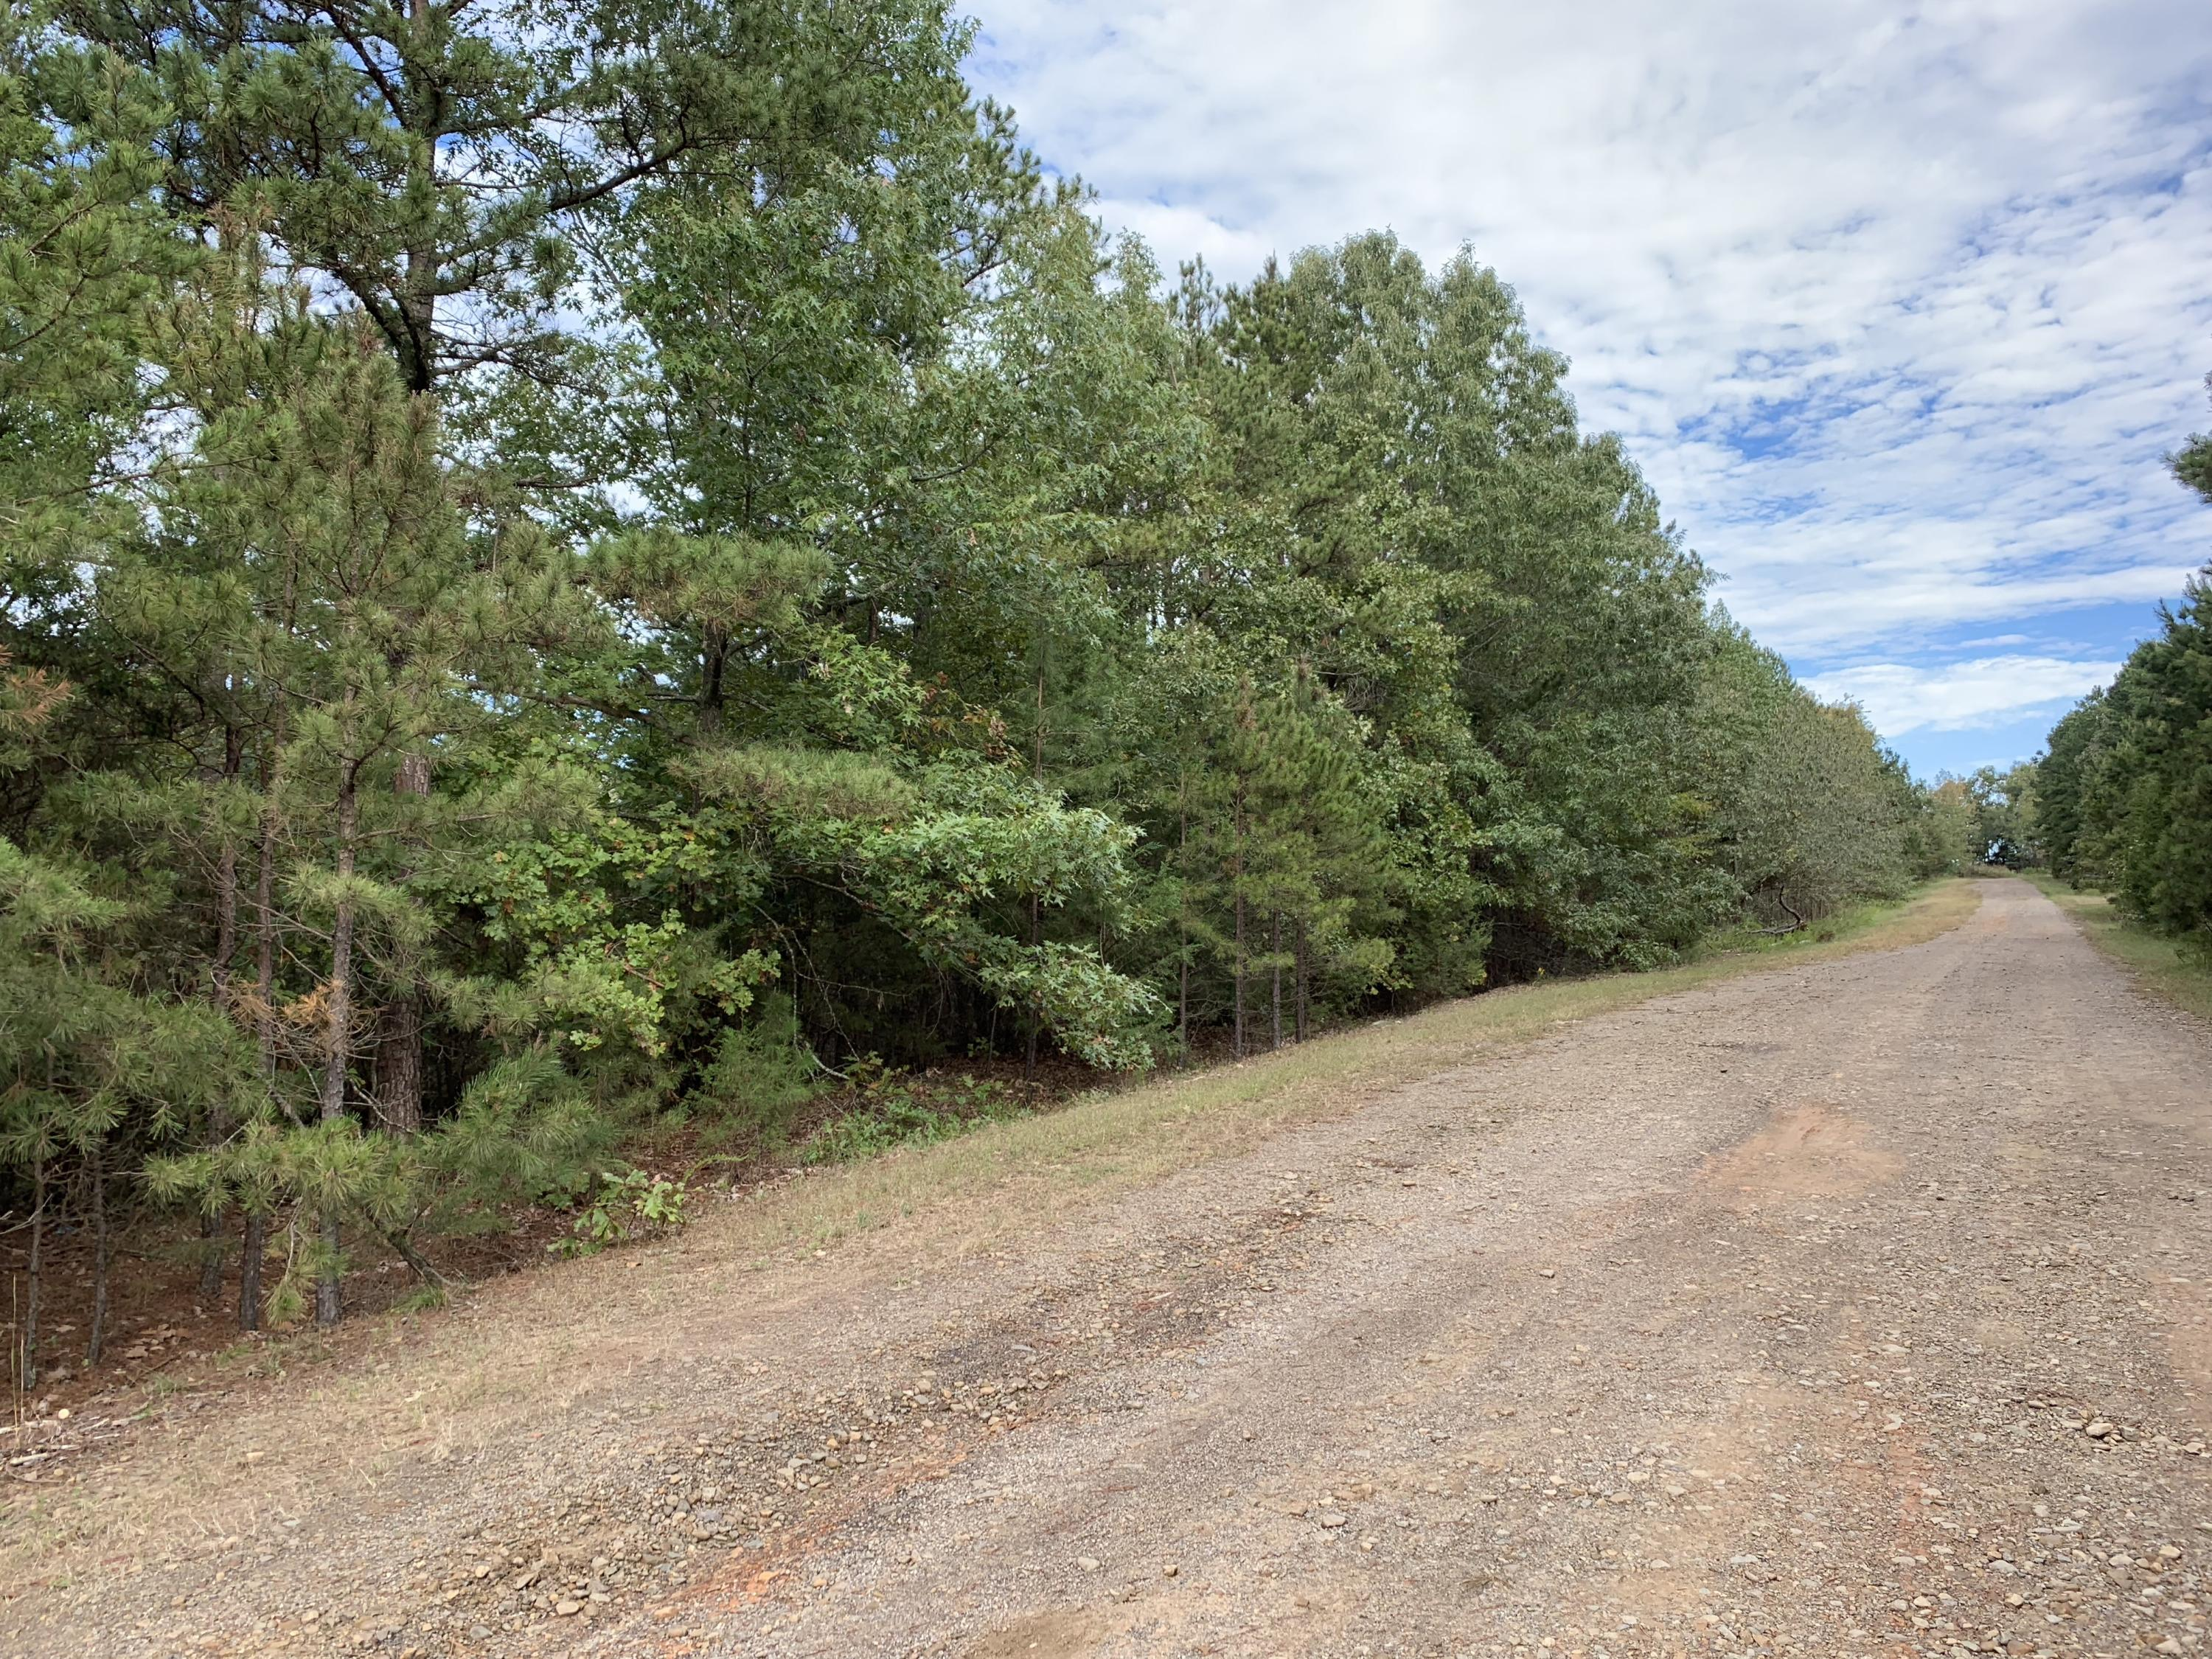 Large photo 4 of land for sale at  Bennett Orchard Estates , London, AR, listed by Coldwell Banker Premier Realty